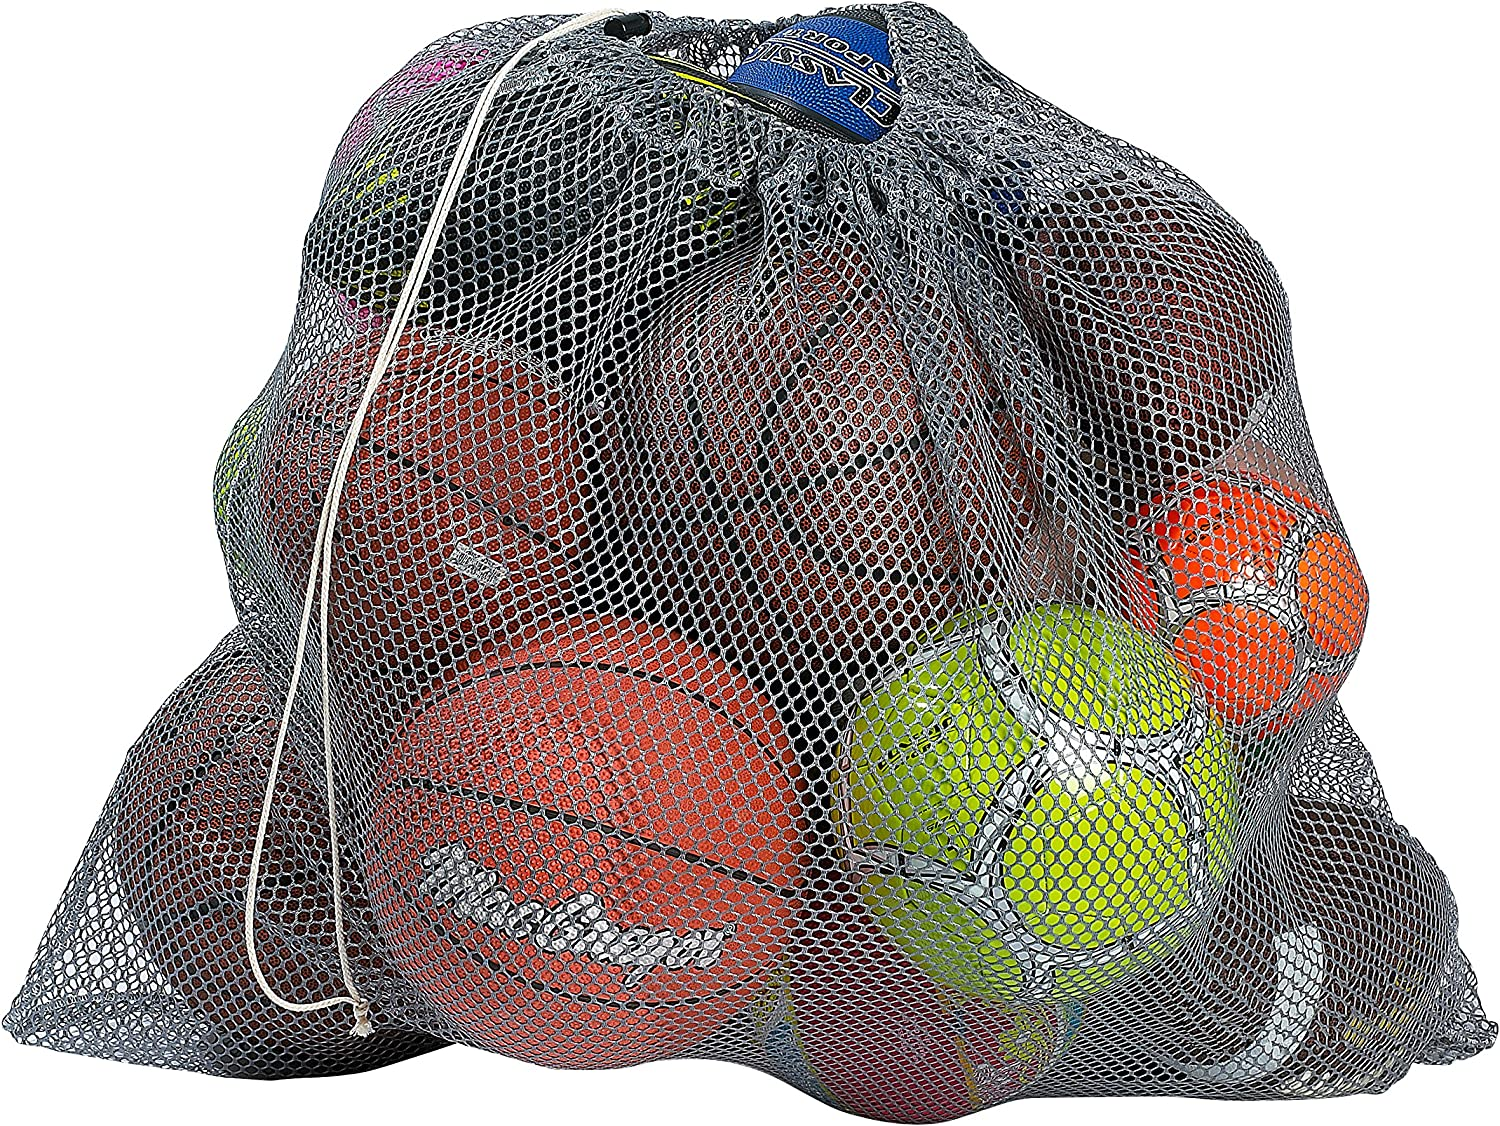 "Mesh Equipment Bag - 32"" x 36"" and 24"" x 36"" - Adjustable, sliding drawstring cord closure. Perfect mesh bag for parent or coach, making it easy to transport and keeping your sporting gear organized."